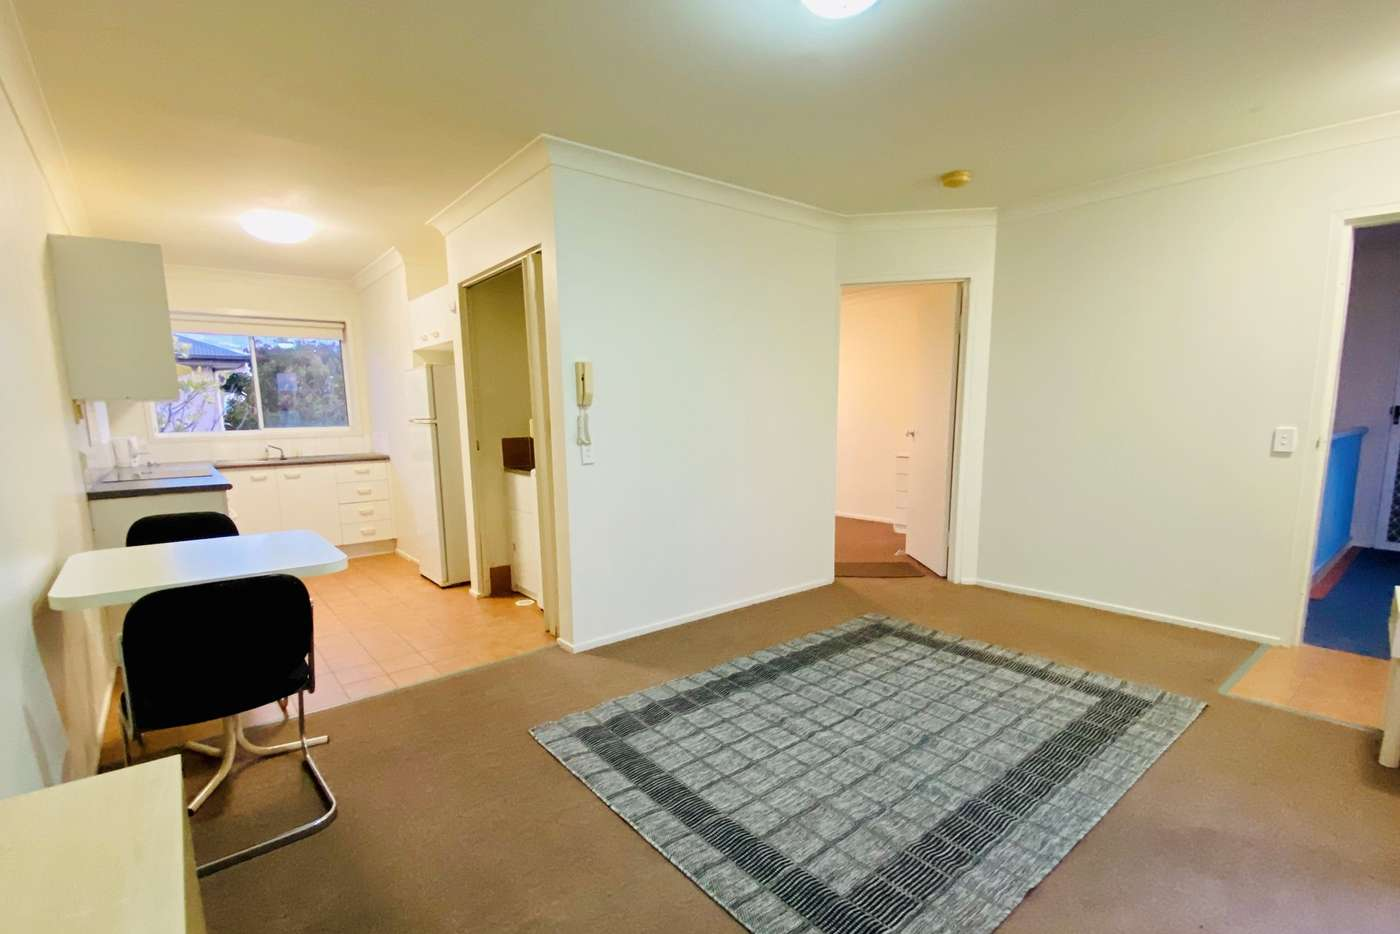 Main view of Homely apartment listing, 16 Lloyd Street, Southport QLD 4215